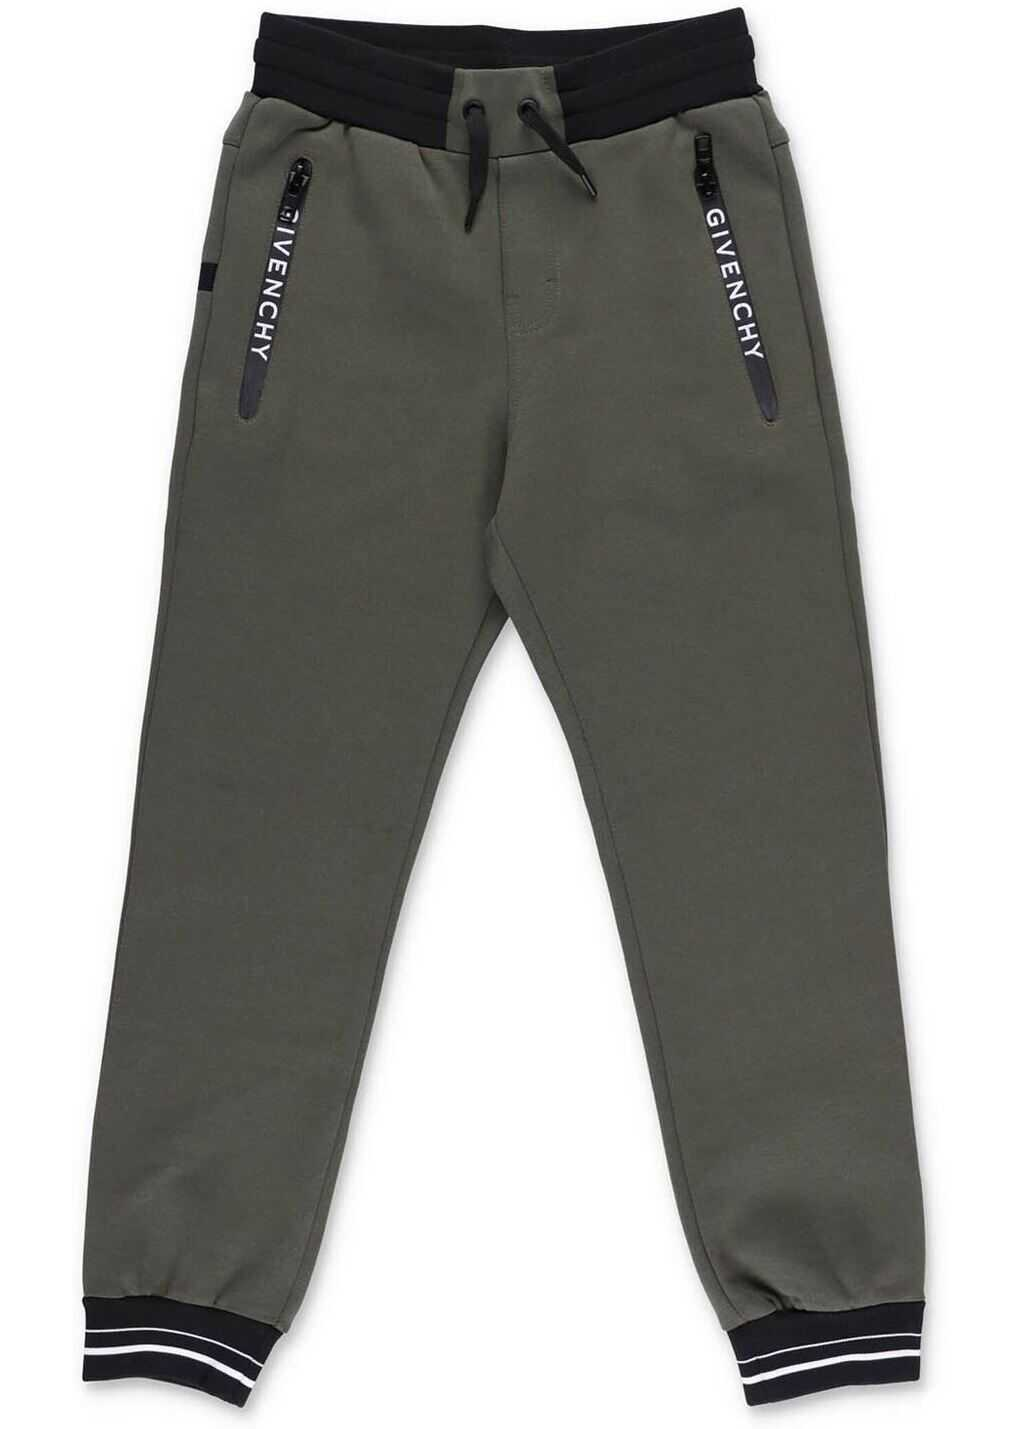 Givenchy Heat-Sealed Zips Pants In Green Green